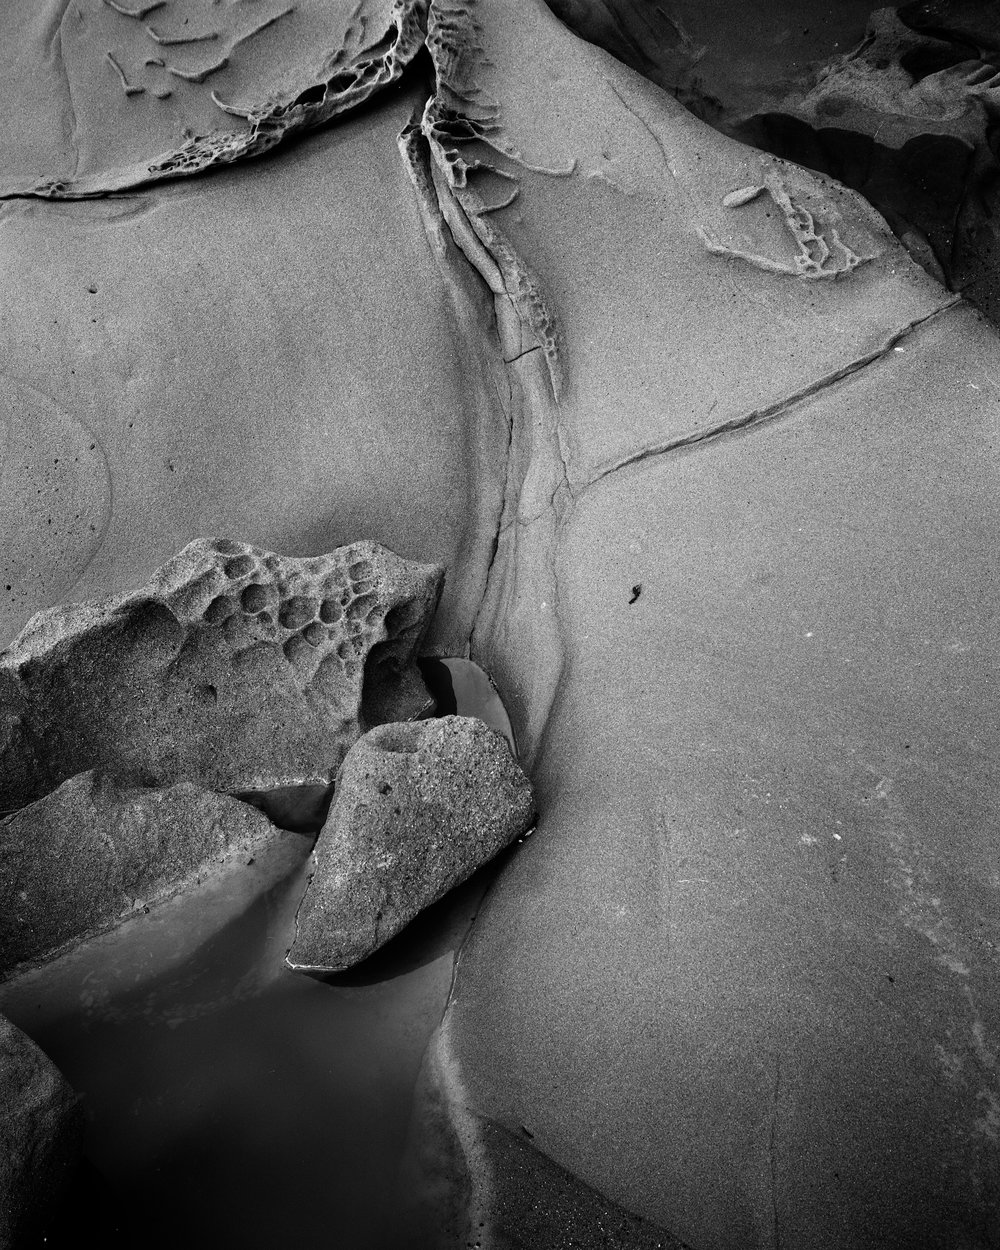 Bean Hollowed Sandstone Detail. Nagaoka 4x5, Fujinon 125mm f/5.6, Ilford Delta 100